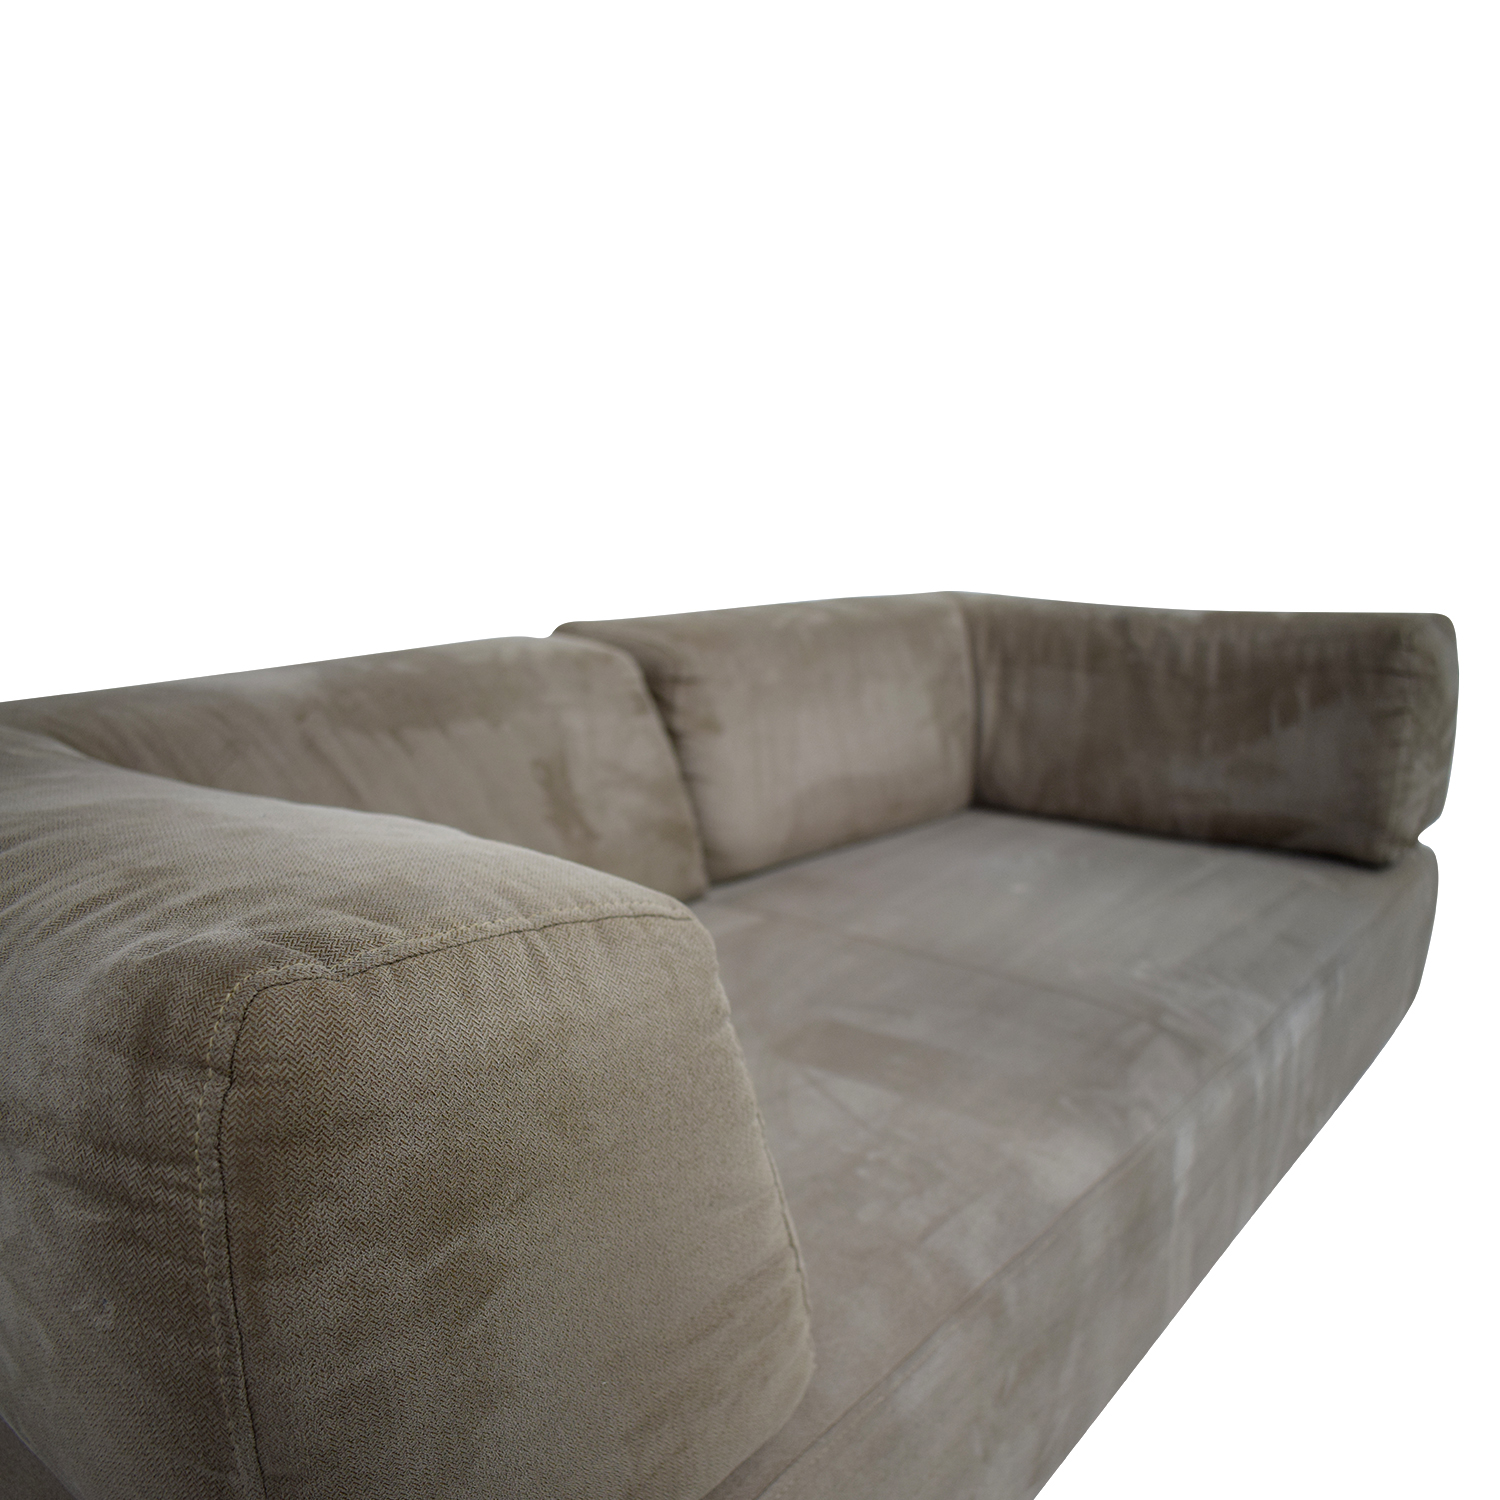 61 off west elm west elm beige sofa with removable back cushions sofas